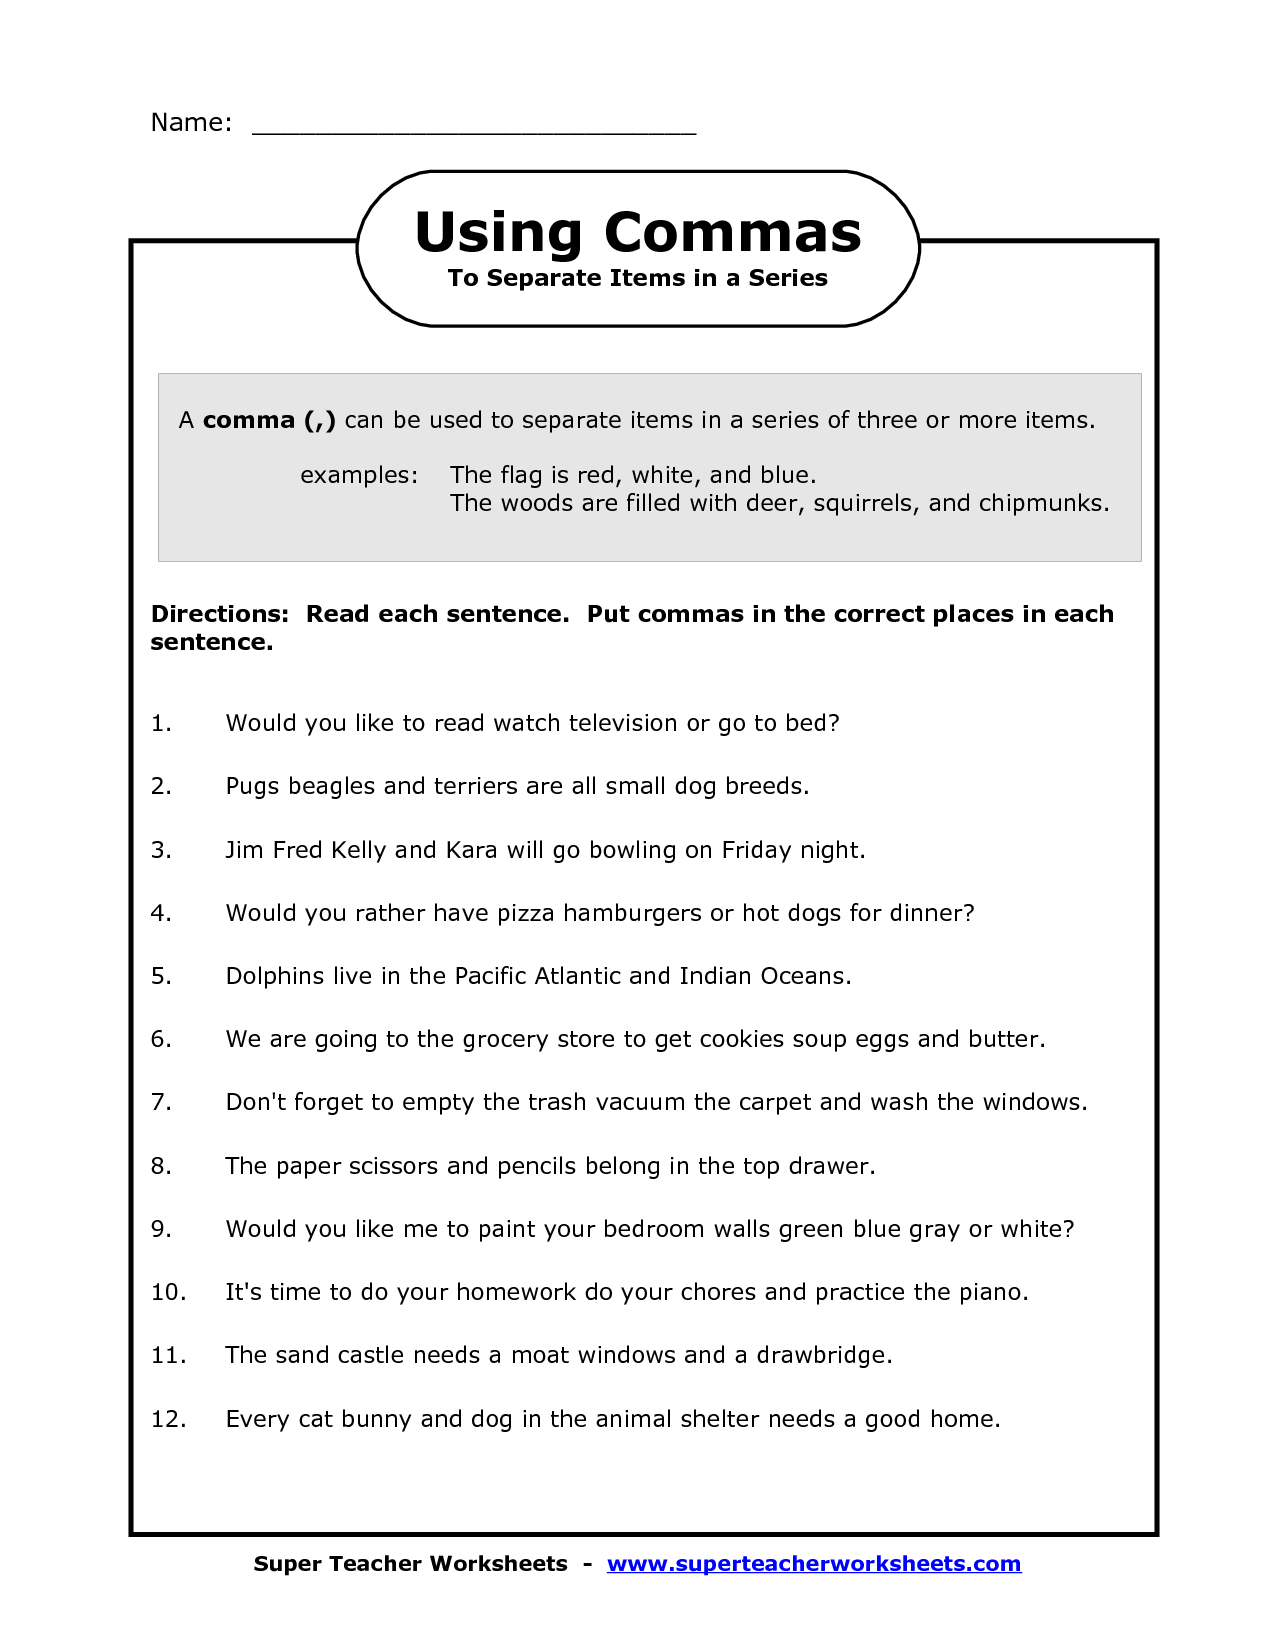 Worksheets Commas Worksheets comma in a series worksheets image commas worksheet worksheet